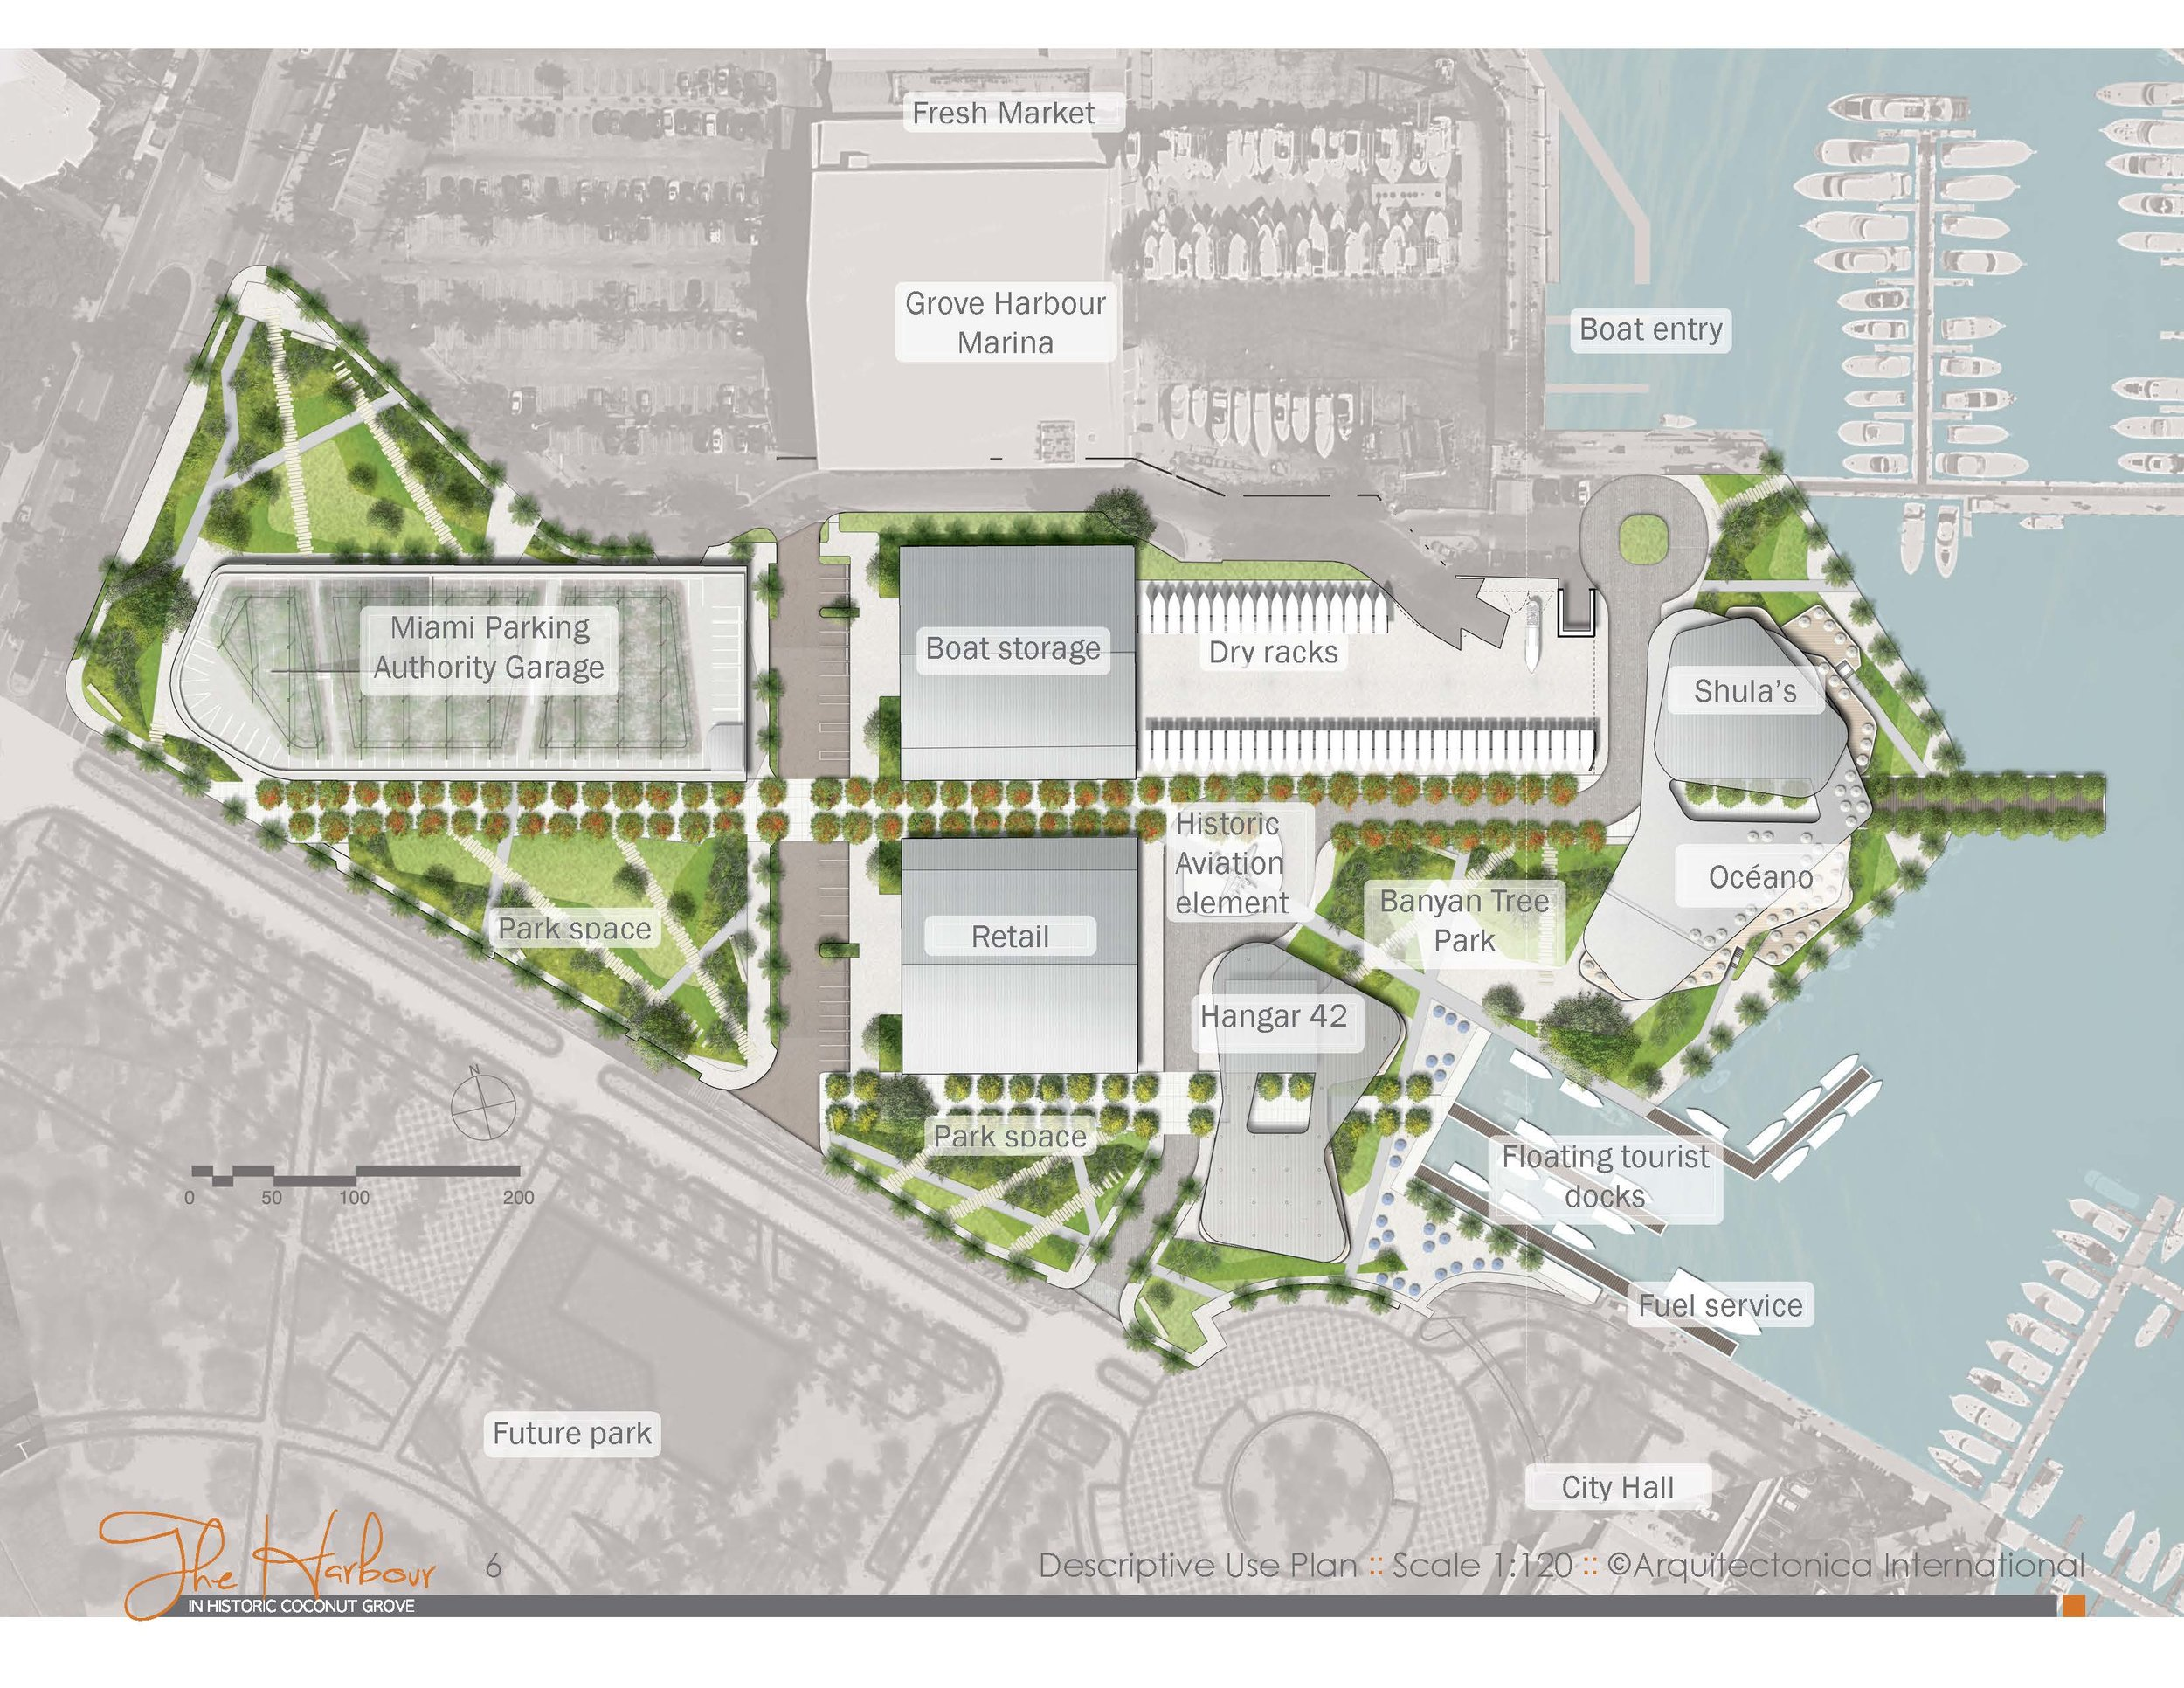 Regatta Harbour Site Plan